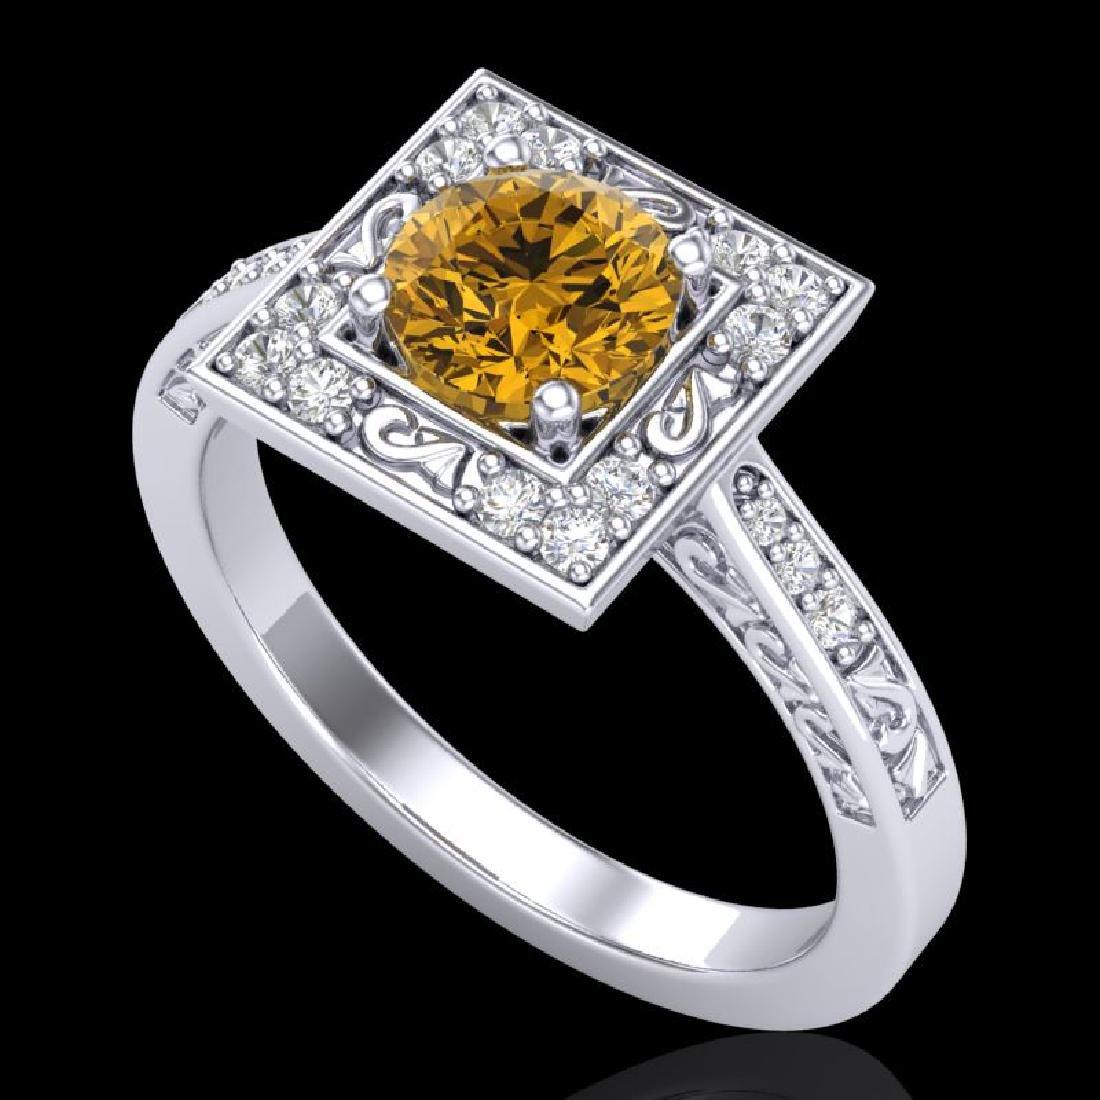 1.1 CTW Intense Fancy Yellow Diamond Engagement Art